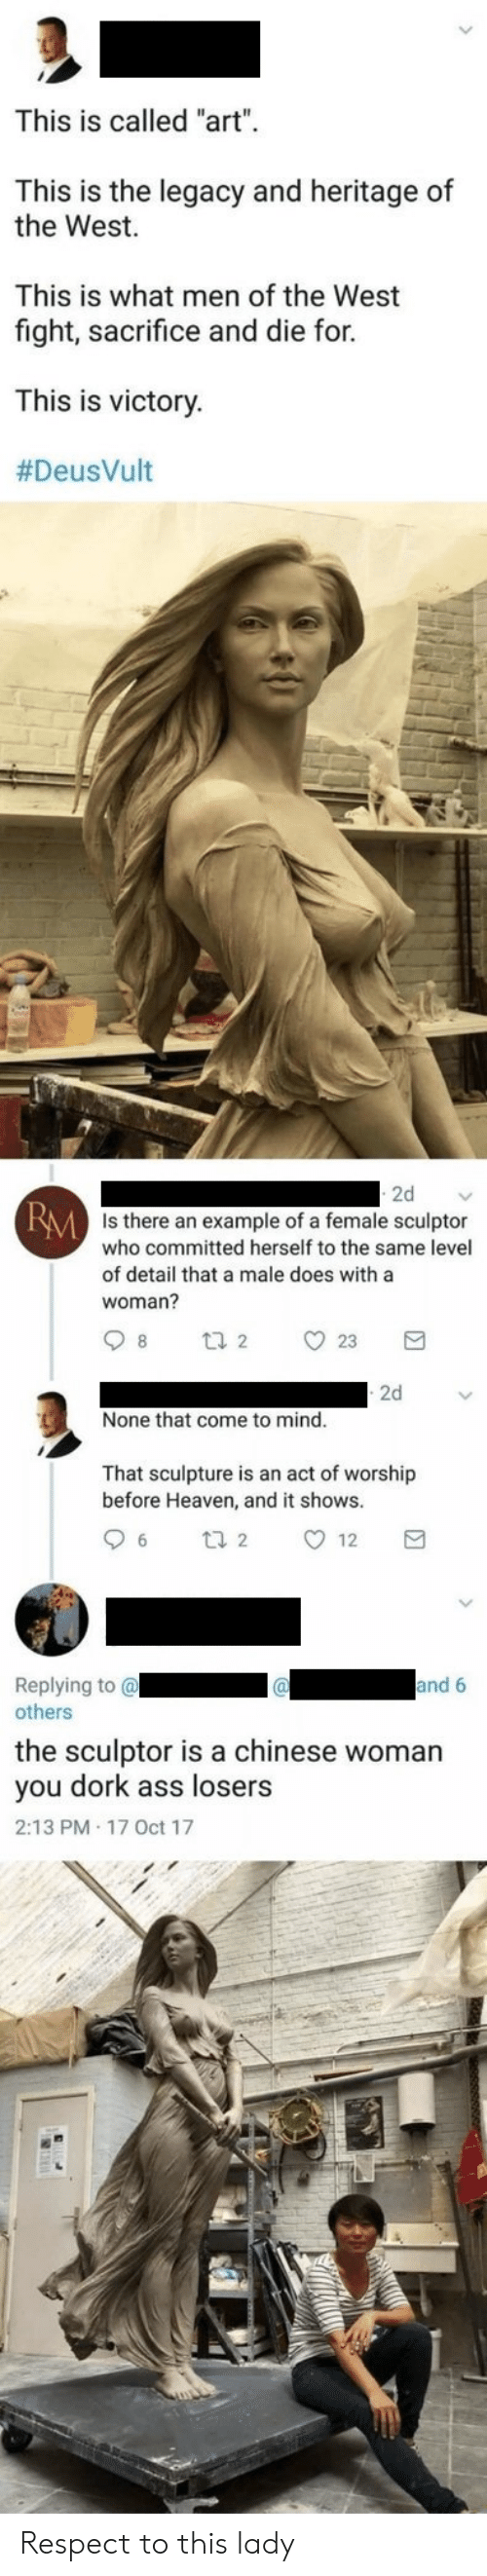 """Ass, Heaven, and Respect: This is called """"art""""  This is the legacy and heritage of  the West  This is what men of the West  fight, sacrifice and die for  This is victory.  #DeusVult  2d  RM Is there an example of a female sculptor  who committed herself to the same level  of detail that a male does with a  woman?  8  23  t 2  2d  None that come to mind.  That sculpture is an act of worship  before Heaven, and it shows.  6  12  t 2  Replying to @  others  and 6  the sculptor is a chinese woman  you dork ass losers  2:13 PM 17 0ct 17 Respect to this lady"""